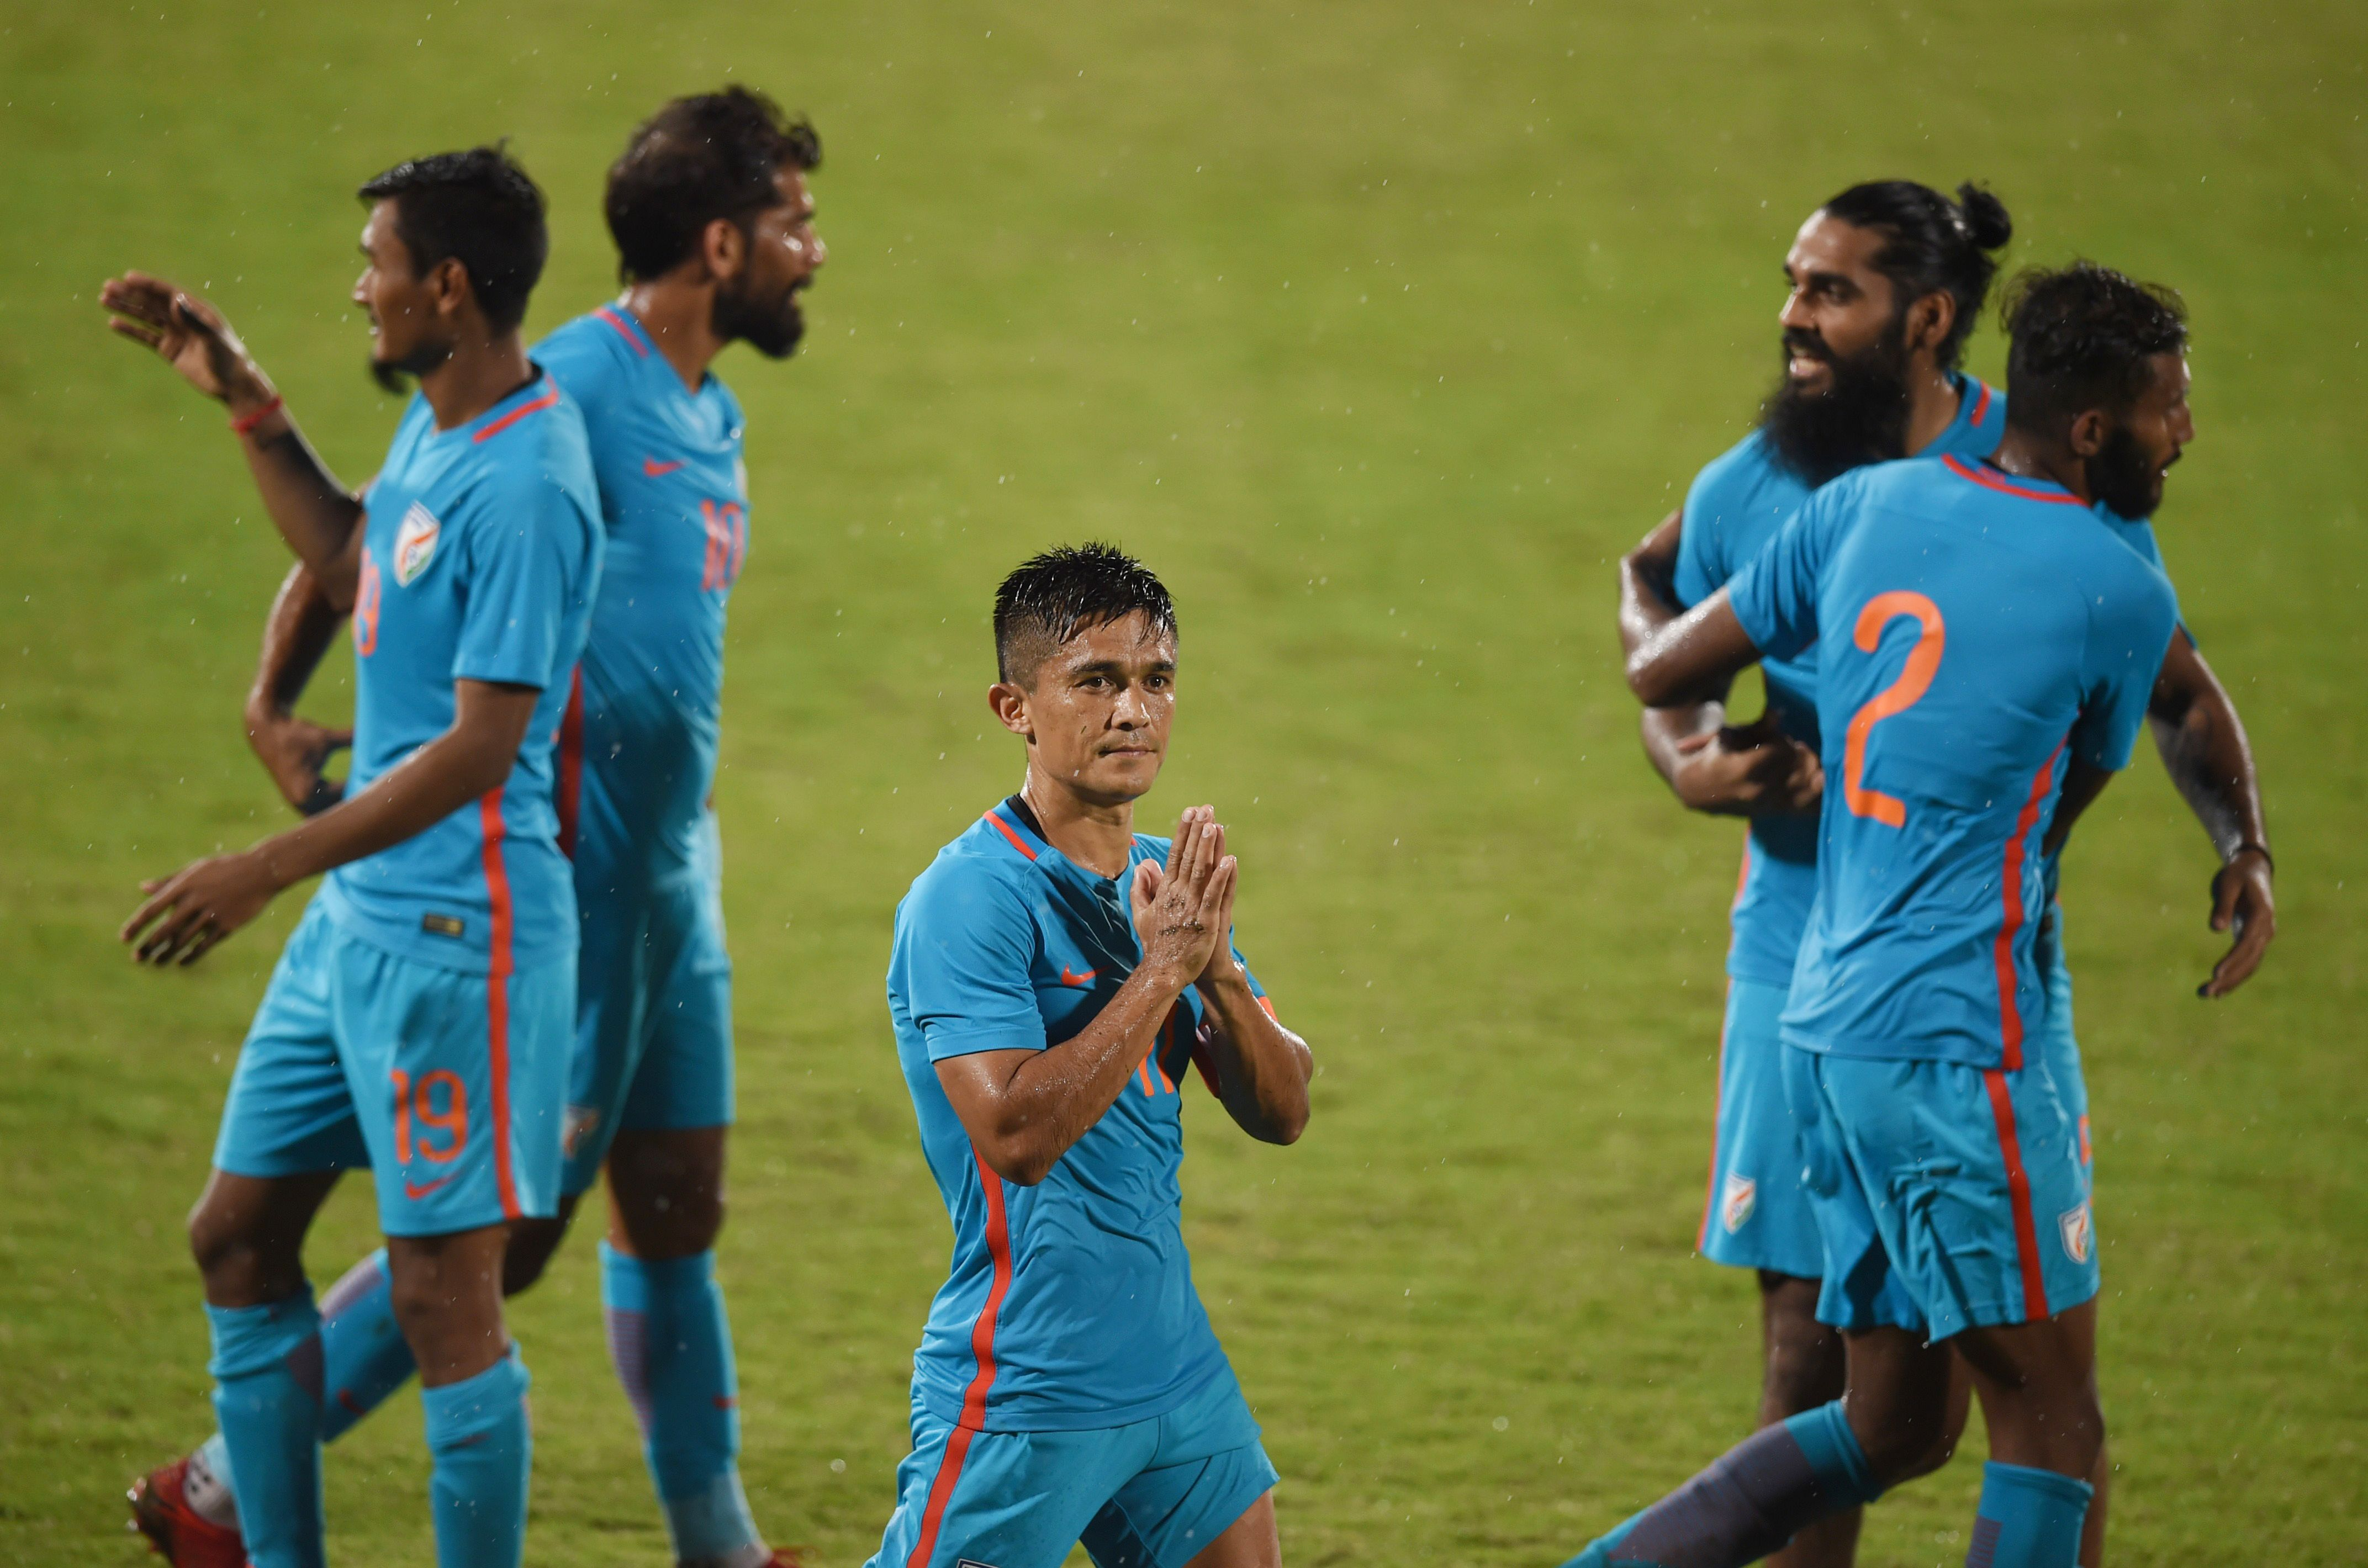 Intercontinental Cup 2019: All you need to know about the